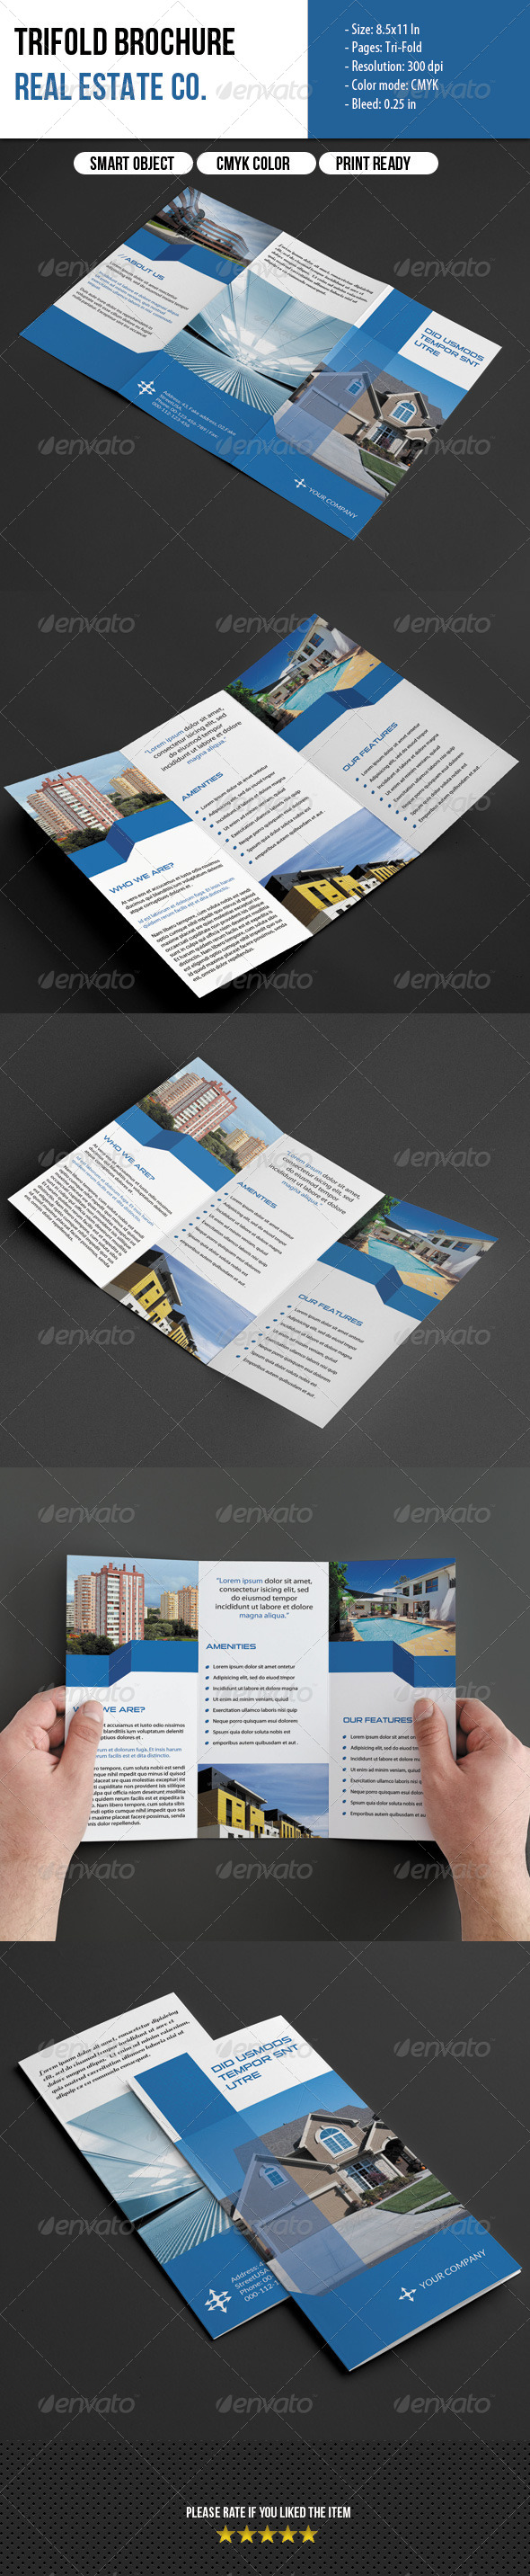 Trifold Brochure-Real Estate